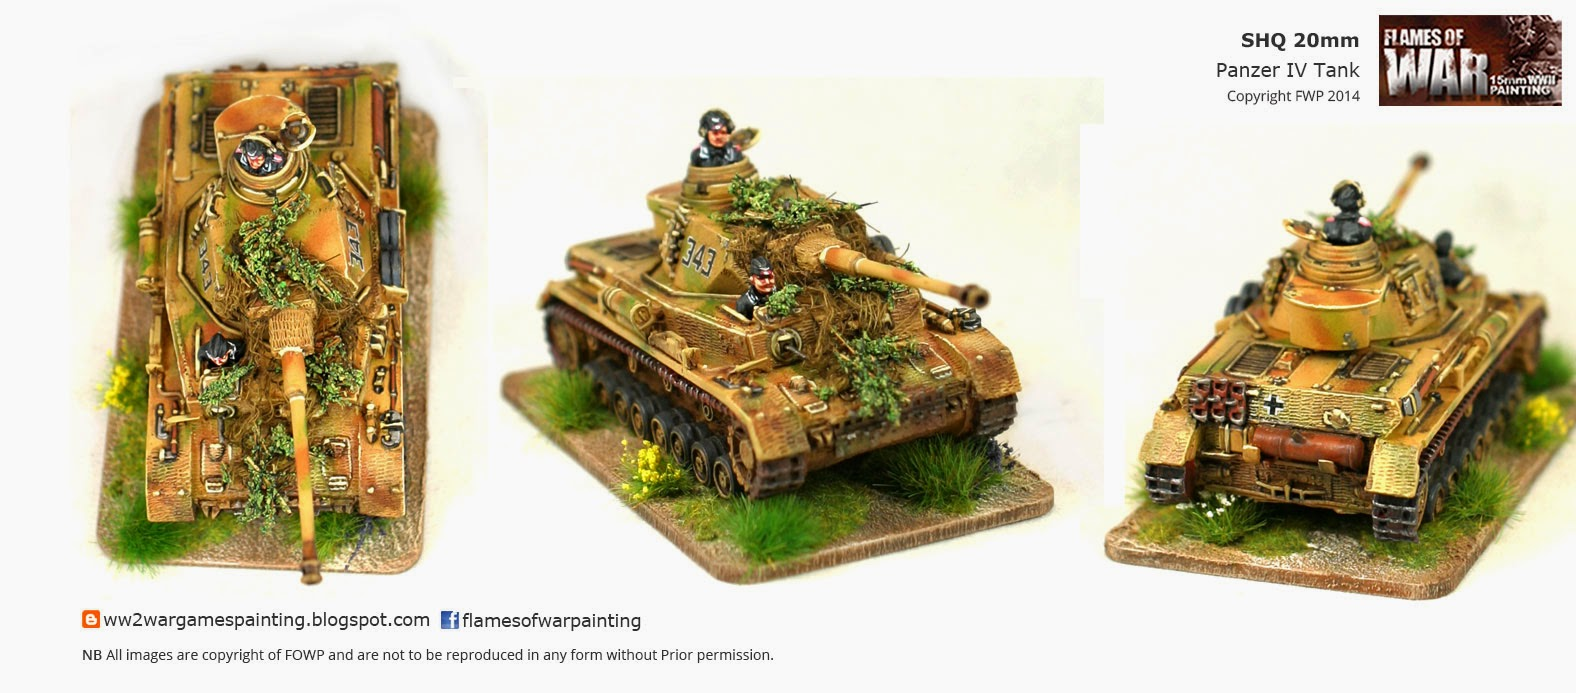 WW2 20mm painted SHQ German Panzer IV